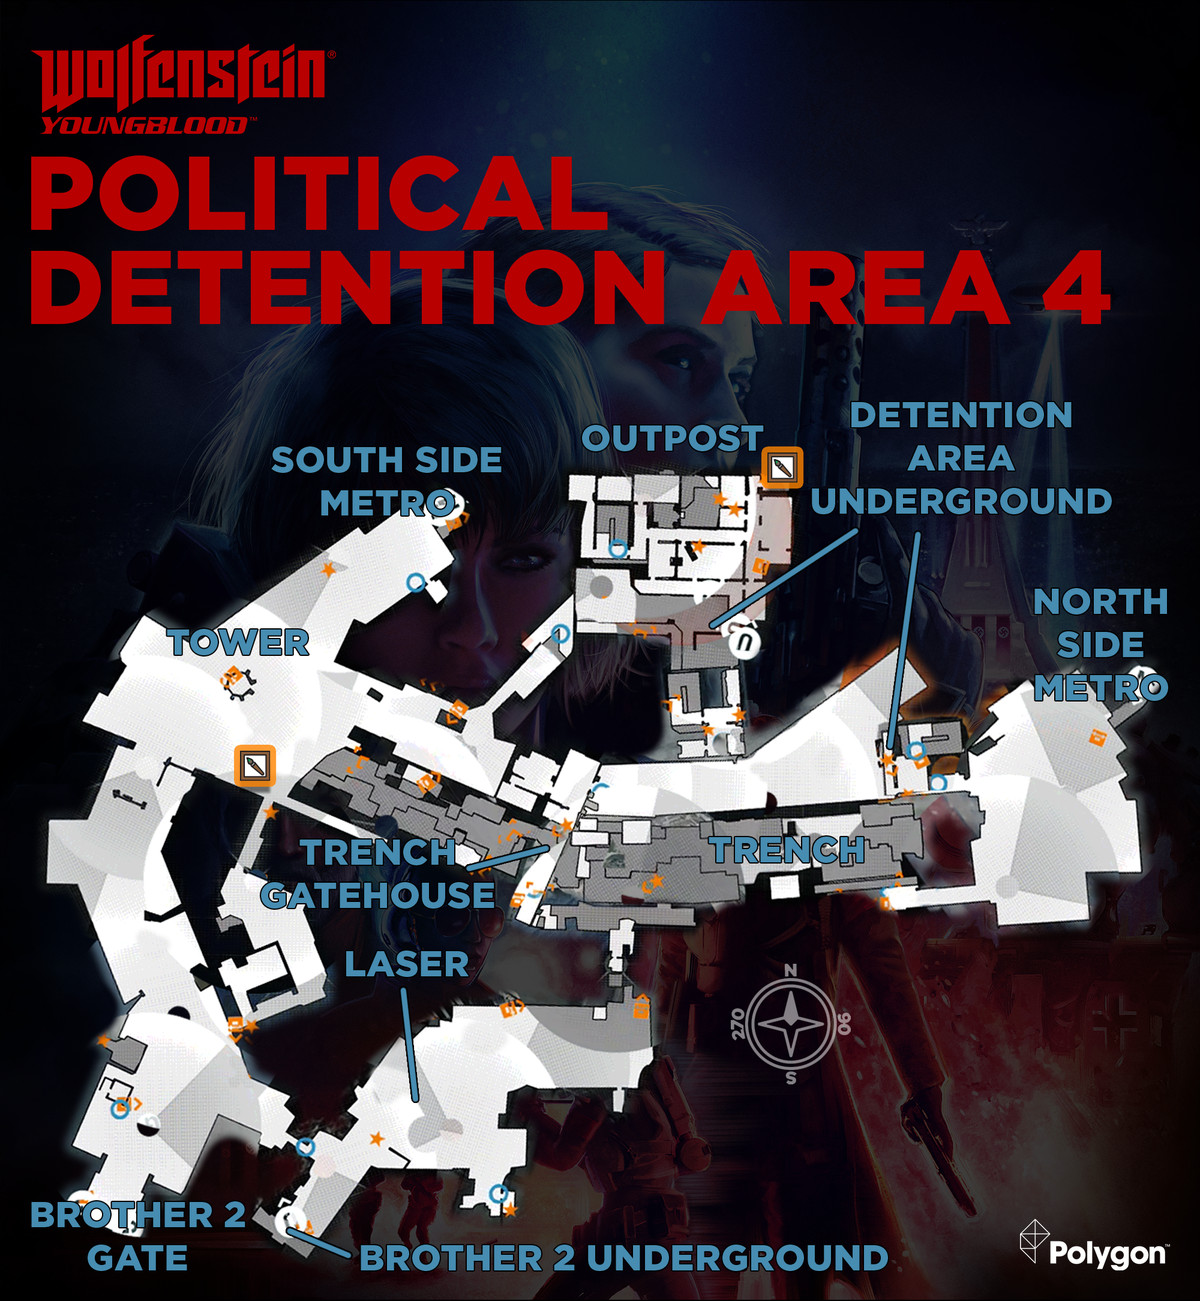 Wolfenstein: Youngblood Detention Area 4 map with Concept Package icons